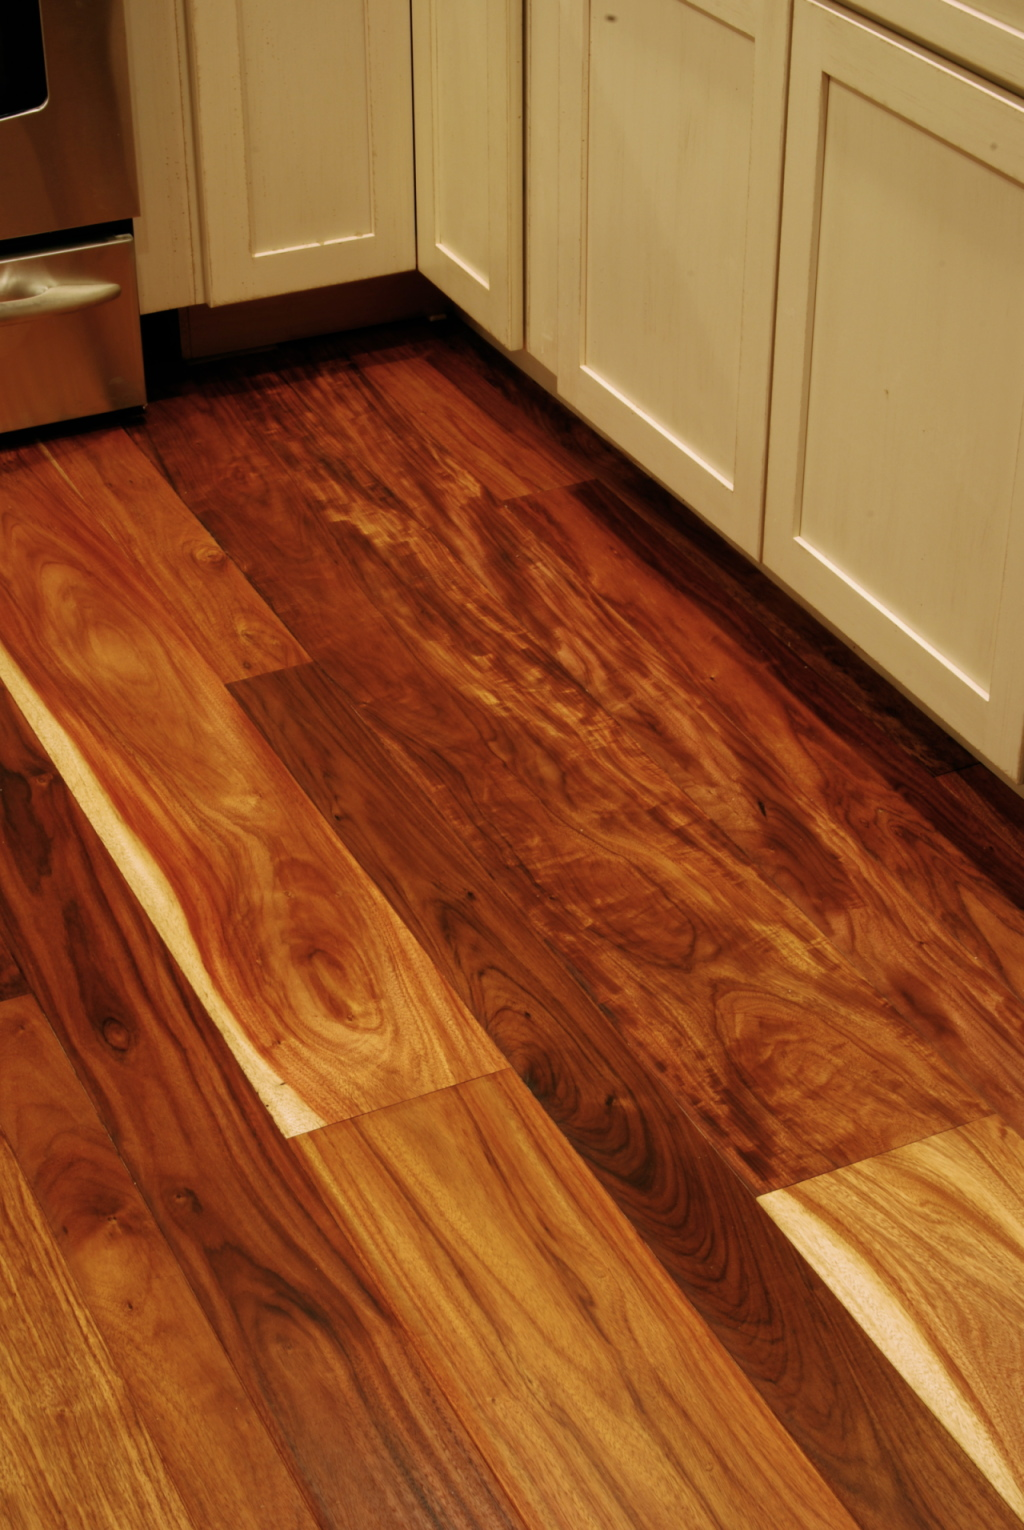 Para rosewood custom wide plank 3 4 x 4 to 24 4 39 14 for Prefinished timber flooring